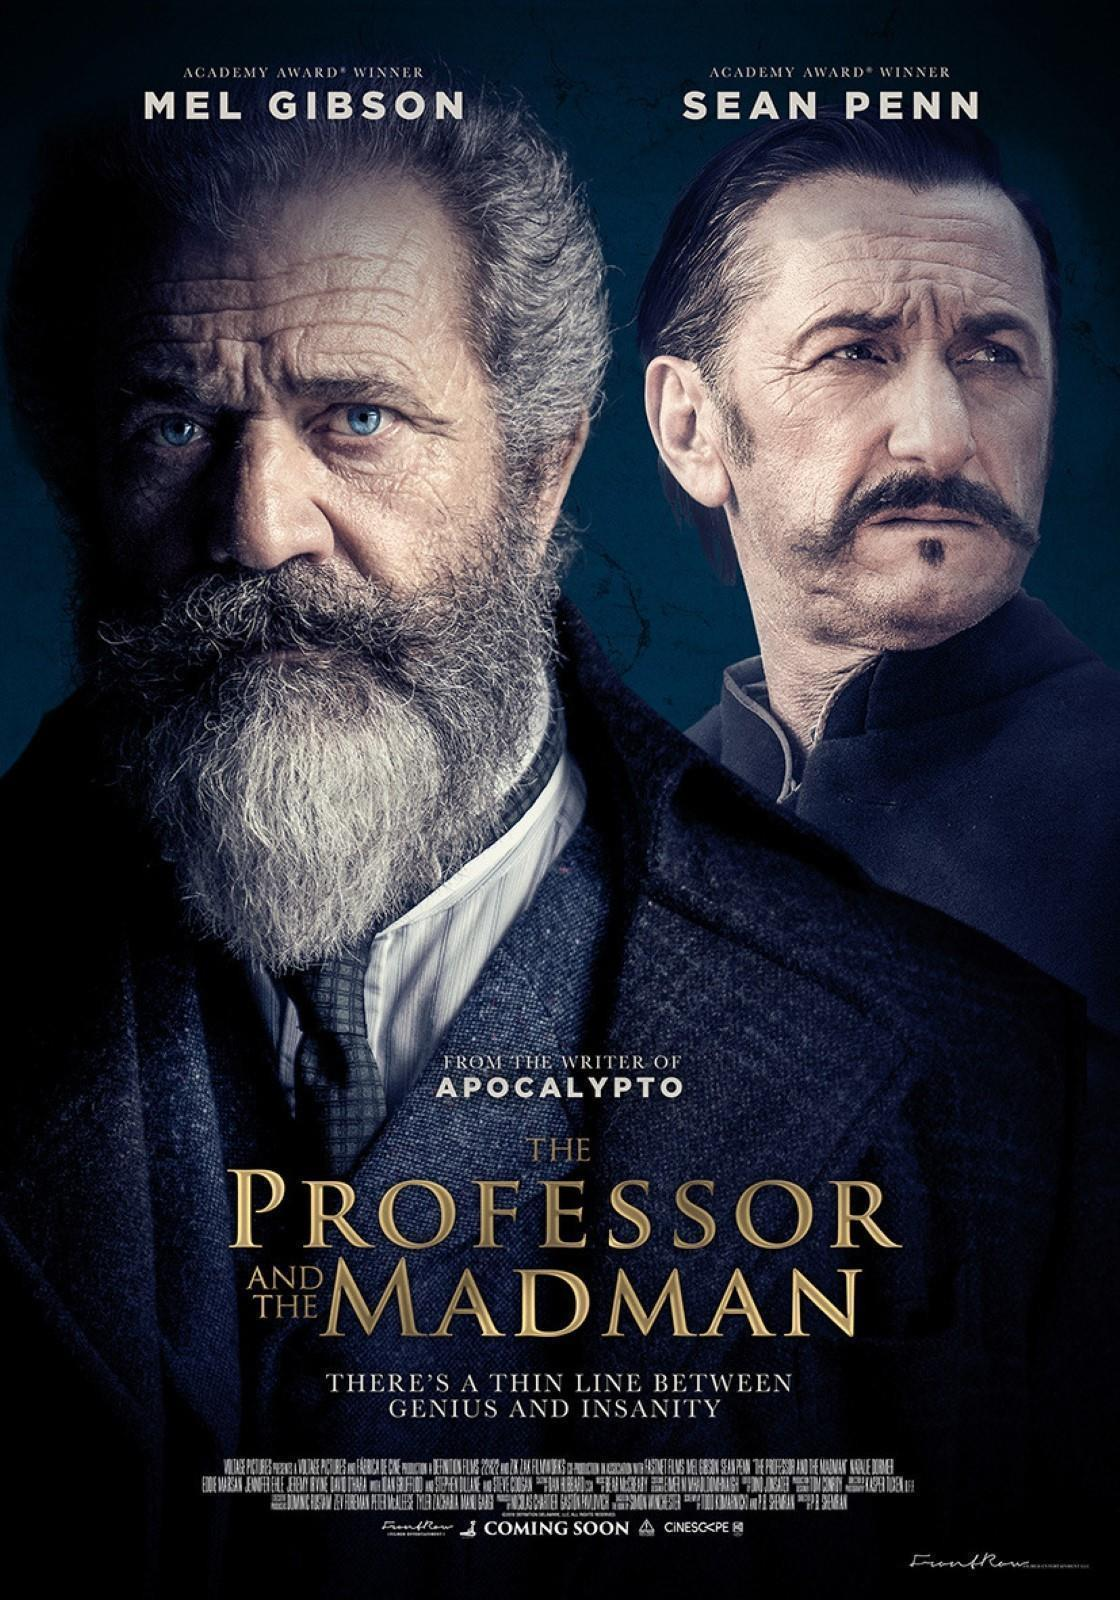 The Professor and the Madman FANSUB VOSTFR 2019 720p BluRay X264 DTS-NIKOo